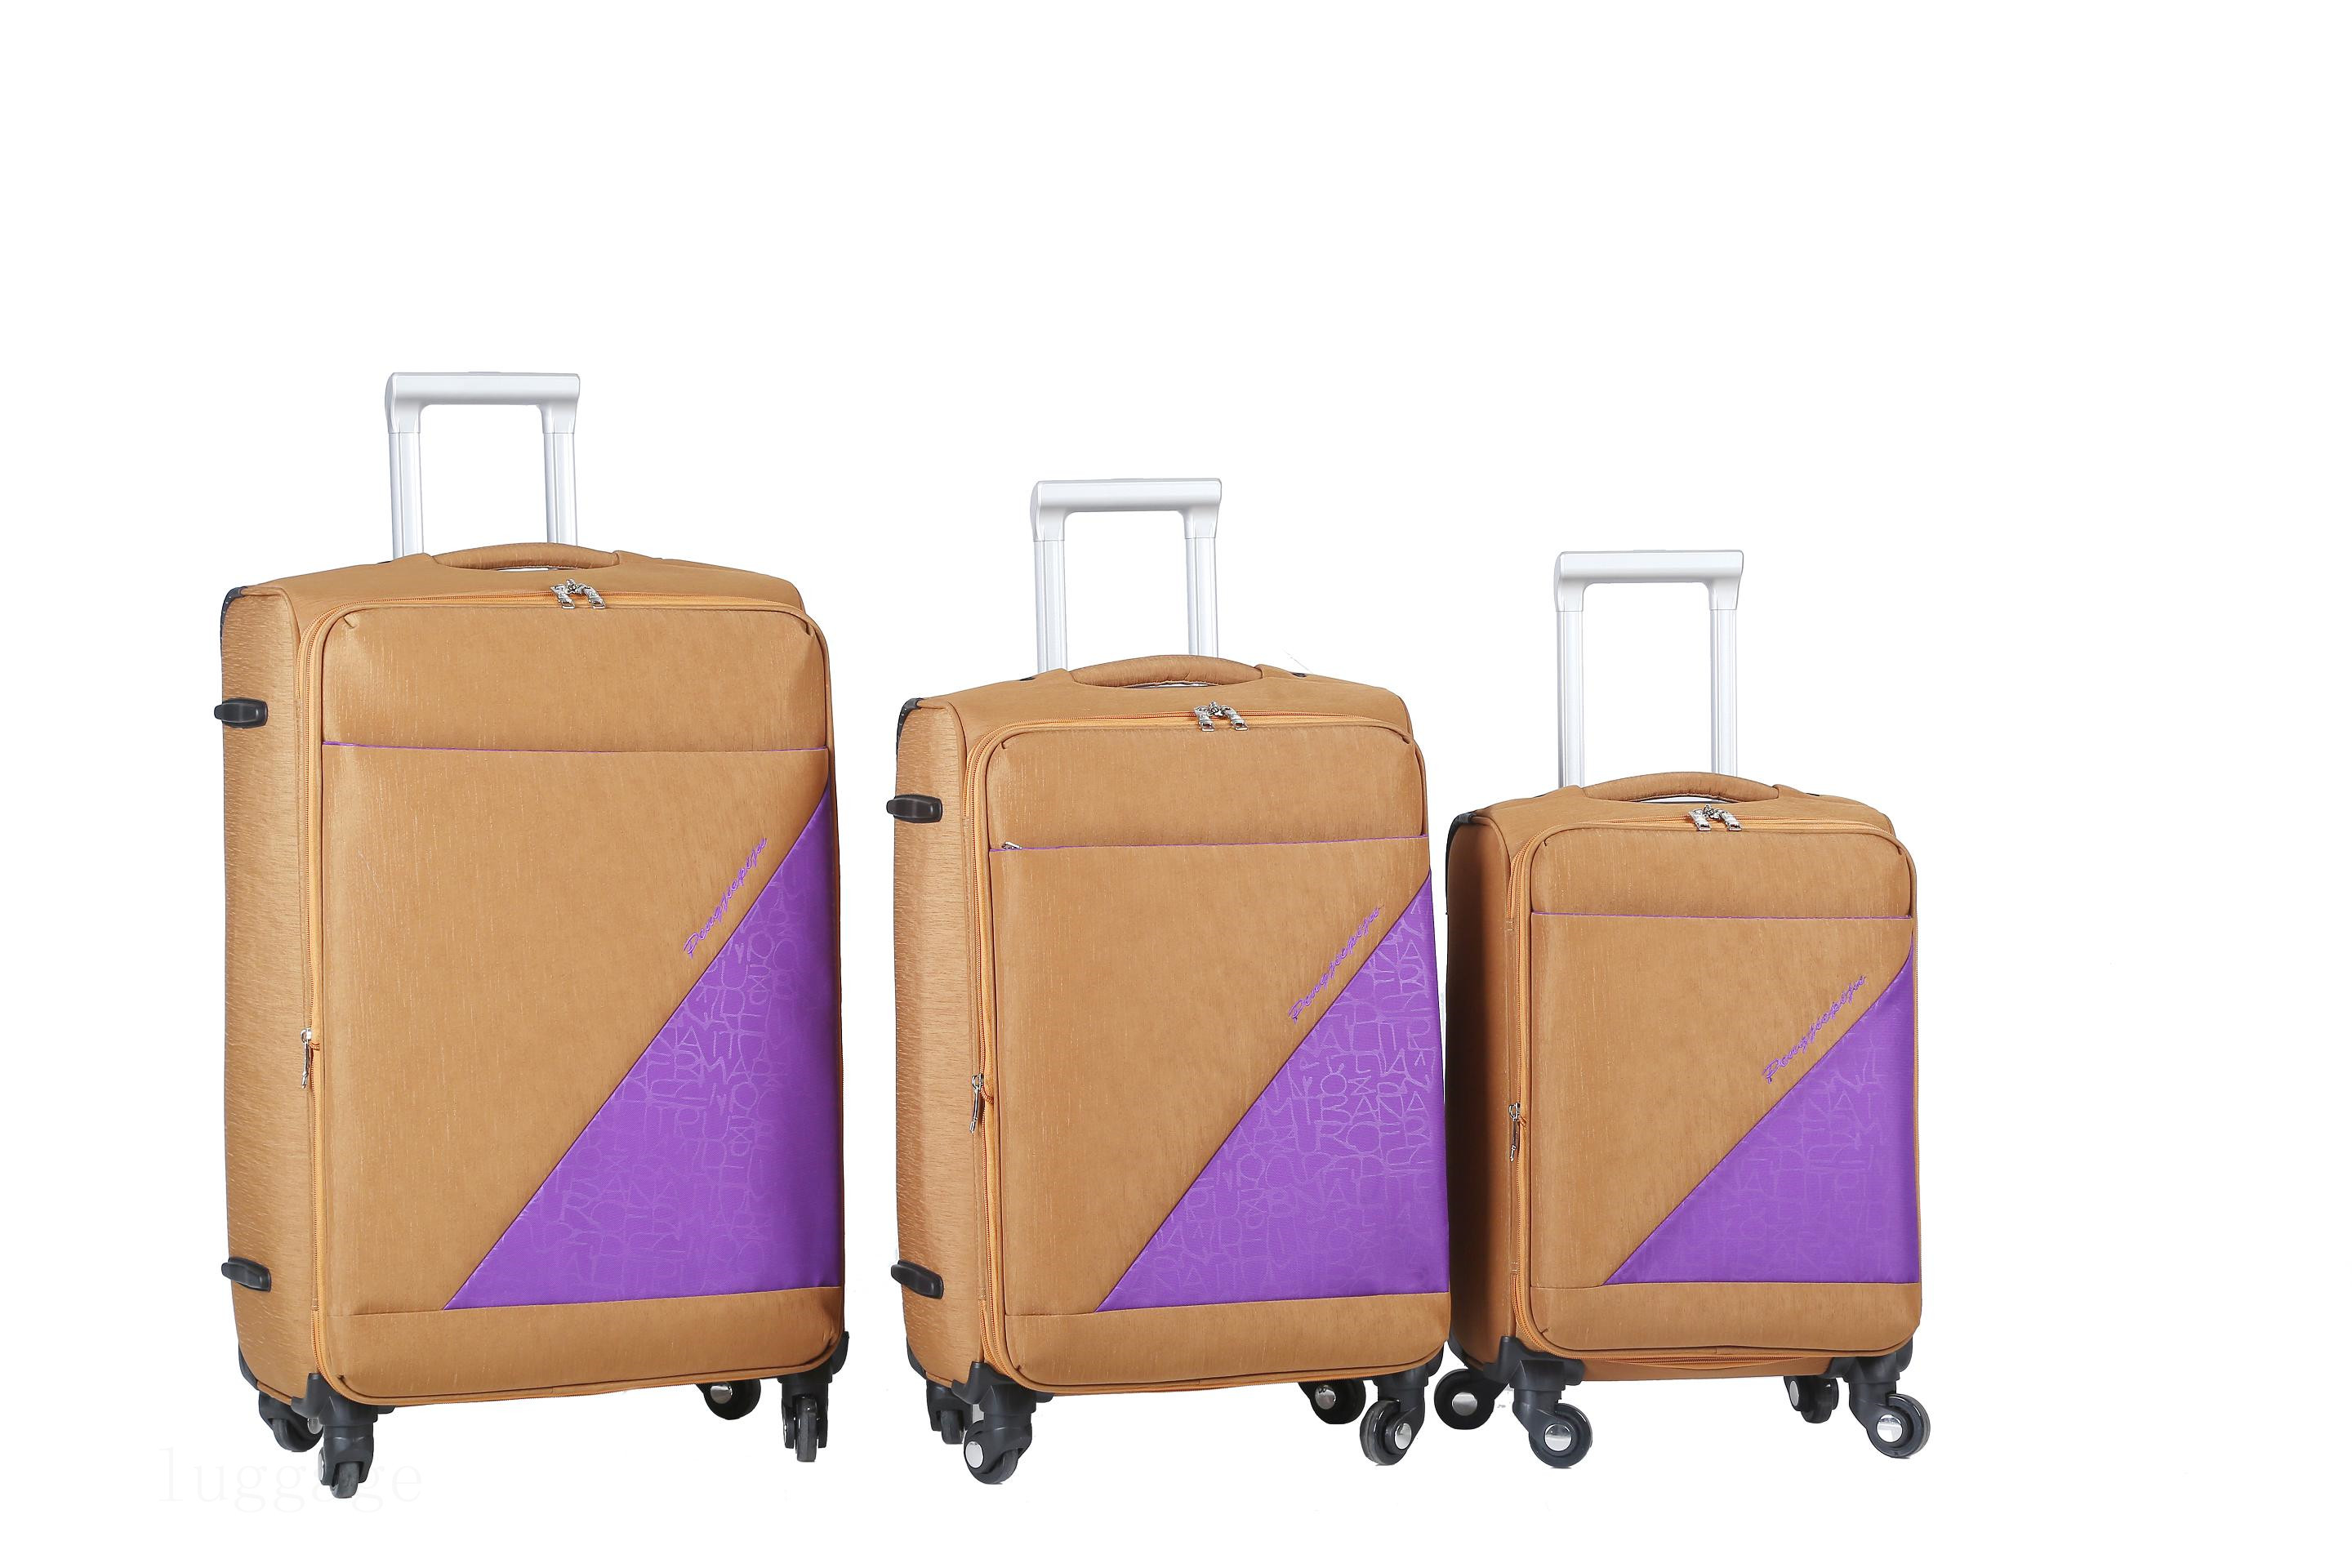 3189#(FABRIC) luggage bags